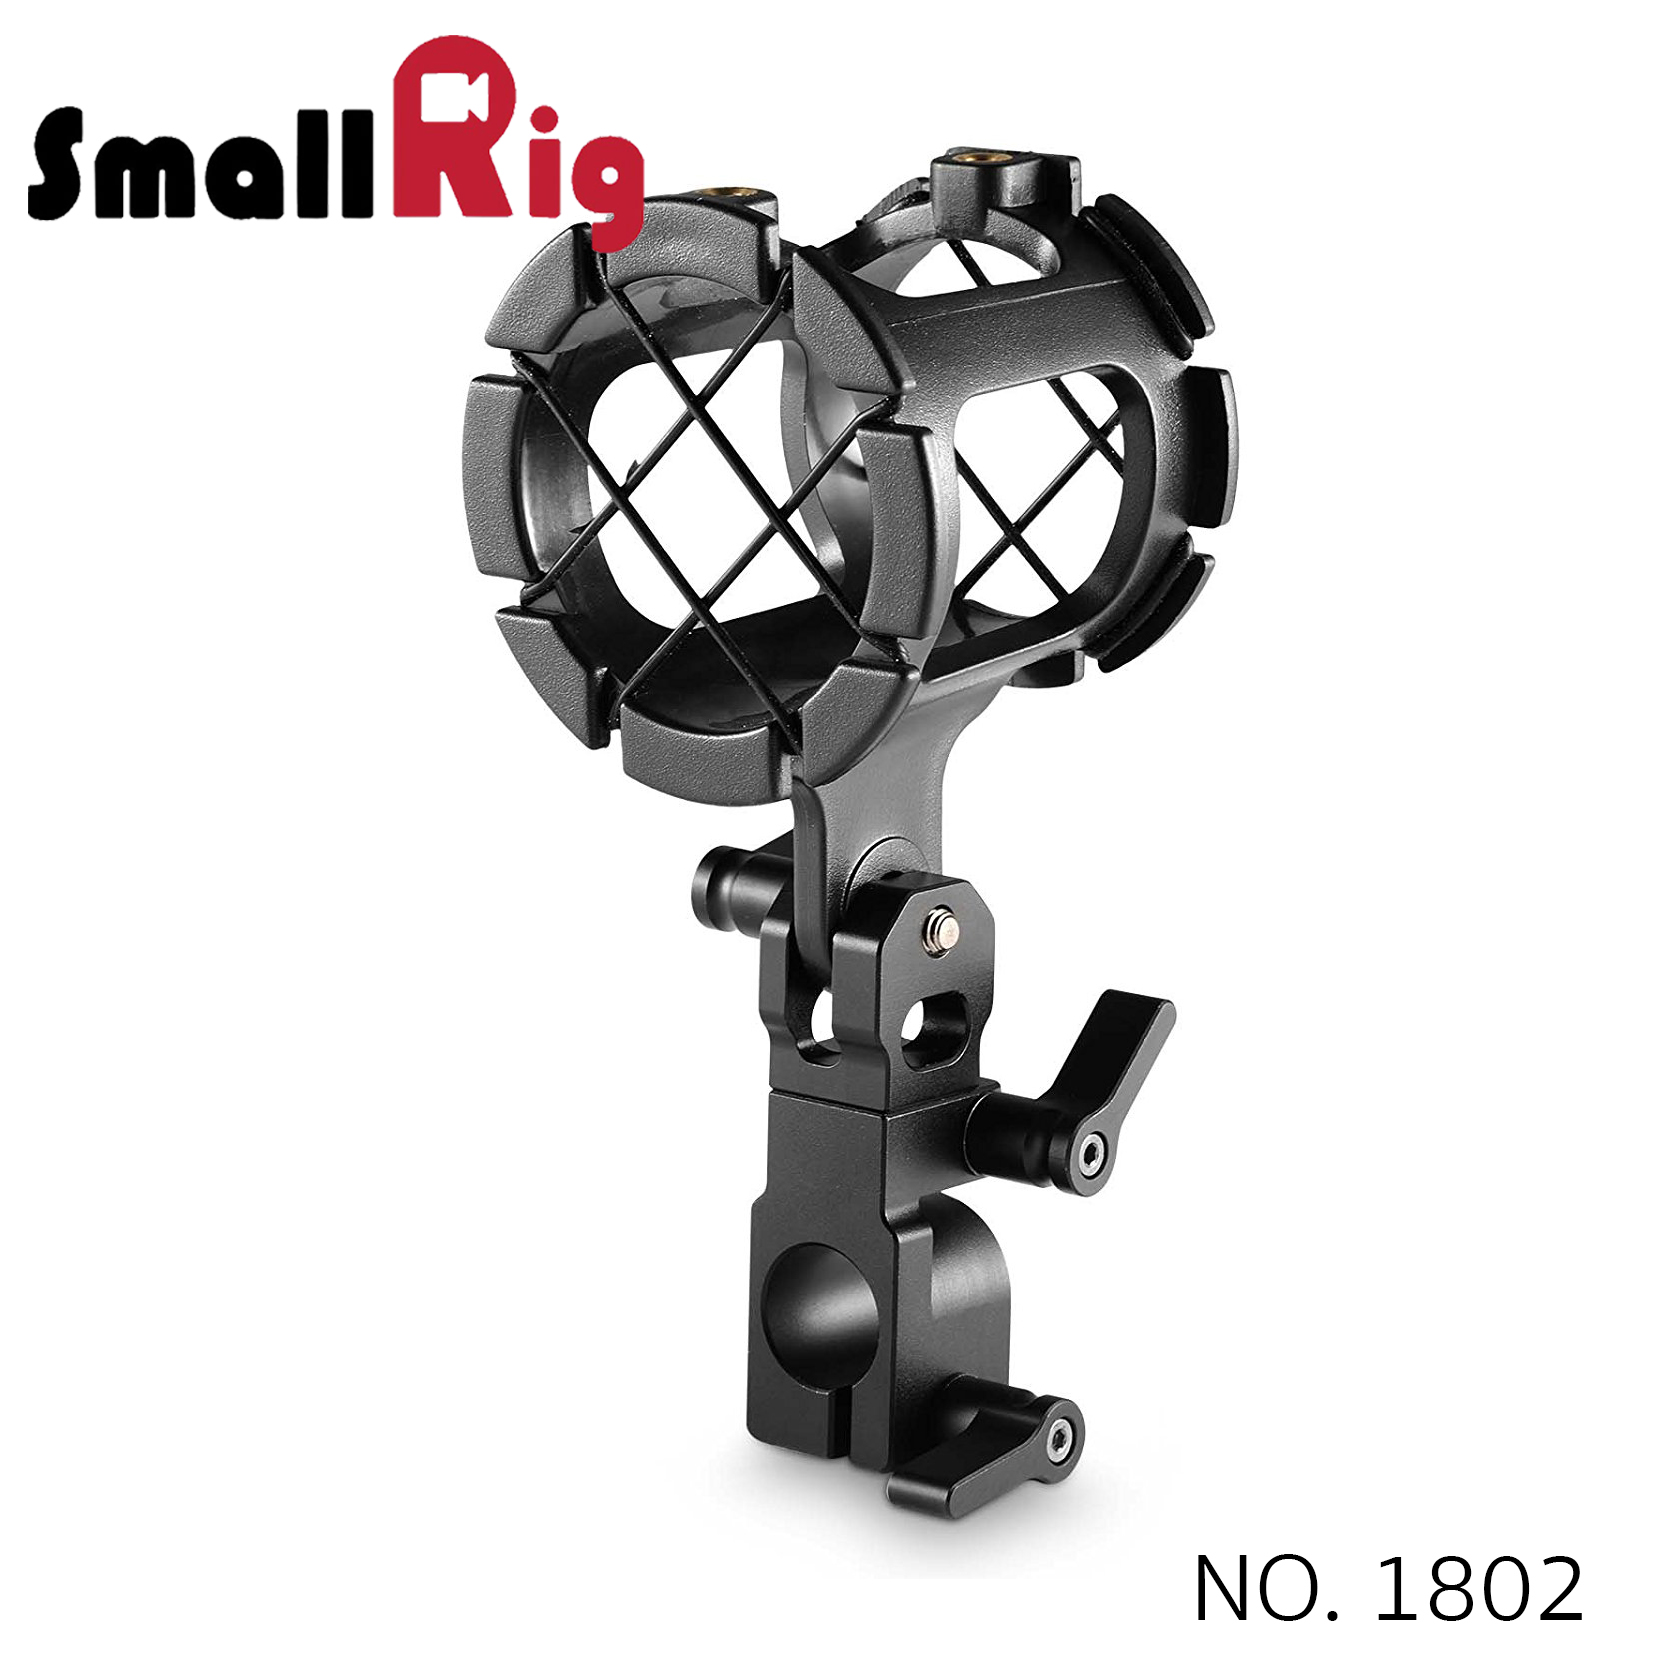 SMALLRIG® Microphone Support with 15mm Rod Clamp 1802